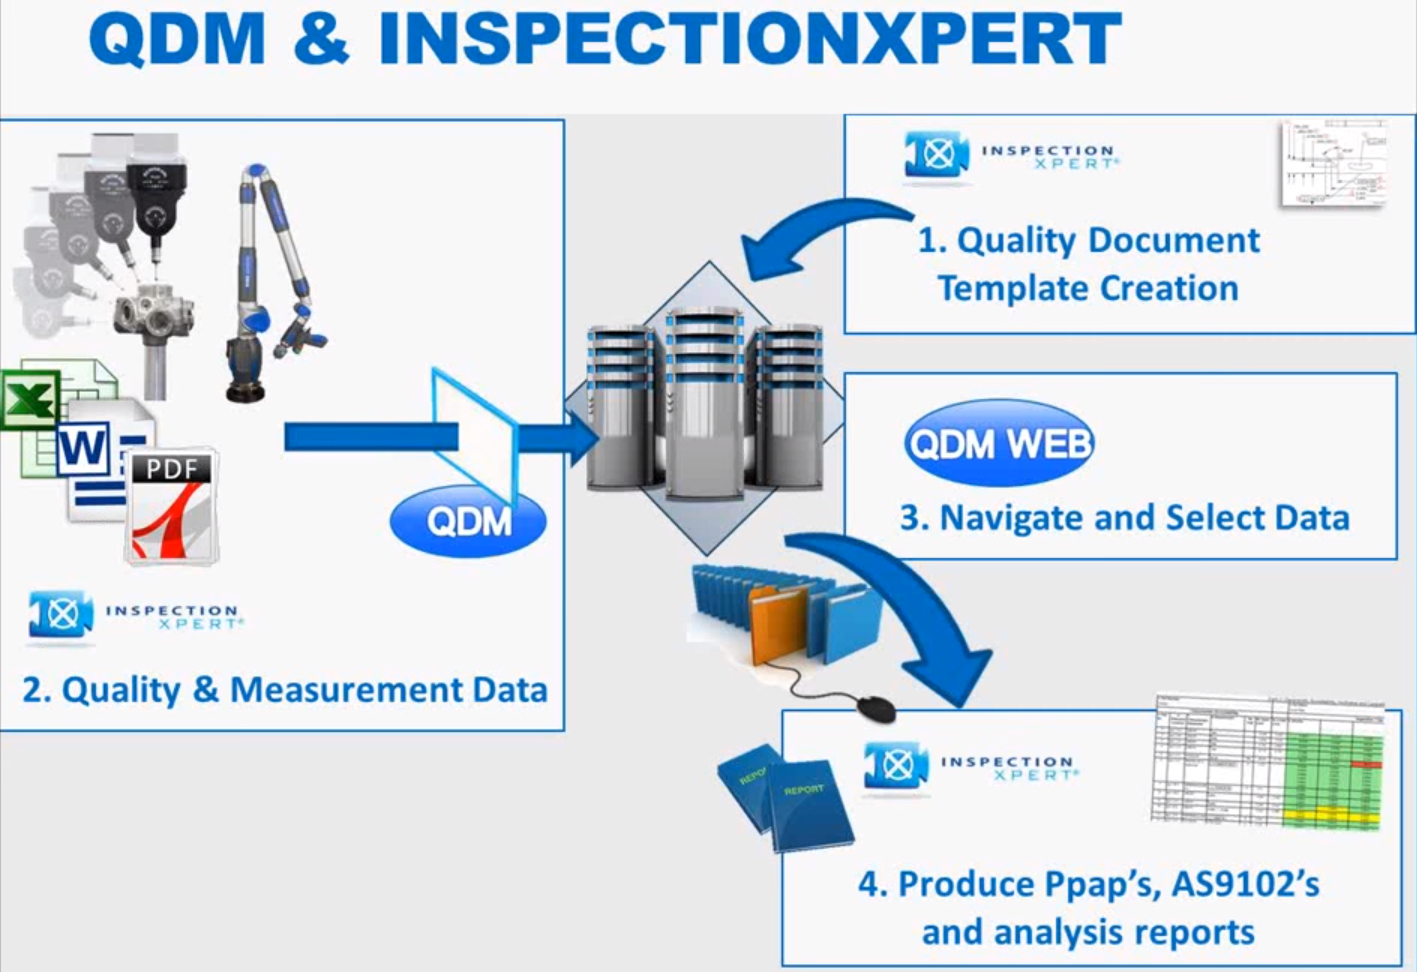 qdm-inspectionxpert-ppap-fair-reports